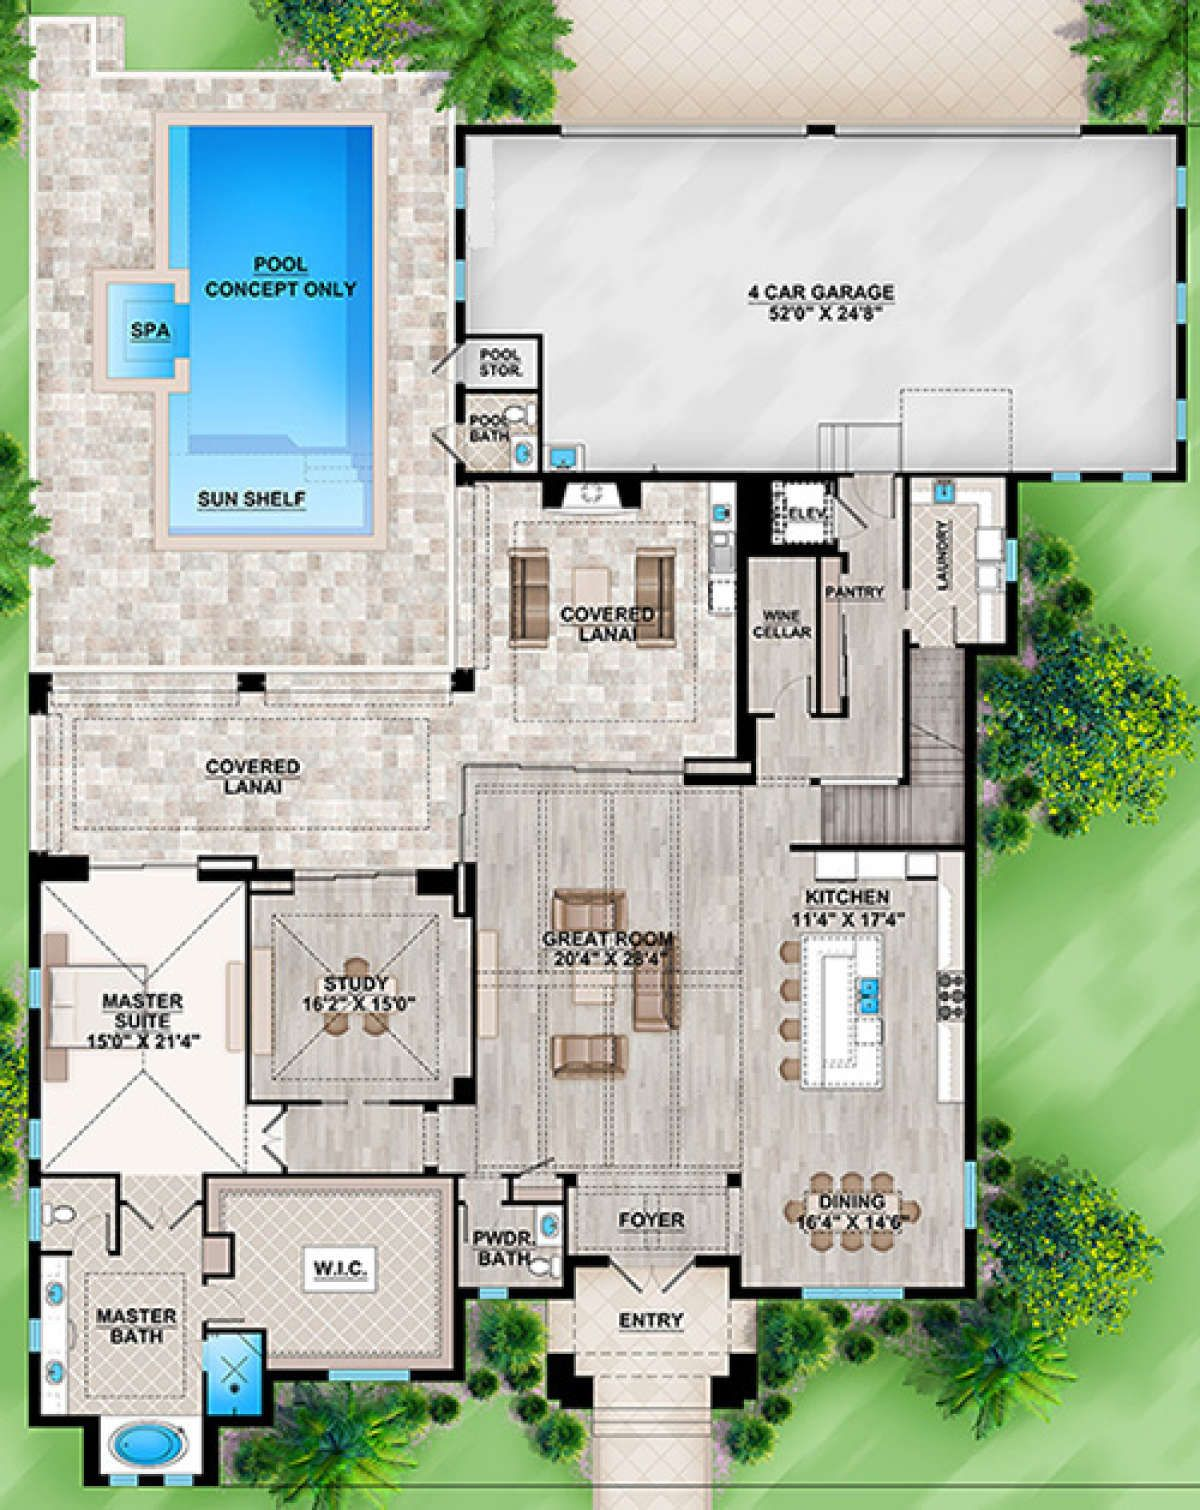 House Plan 207 00041 Contemporary Plan 4 485 Square Feet 4 Bedrooms 5 Bathrooms In 2020 Pool House Plans Sims House Plans House Layout Plans